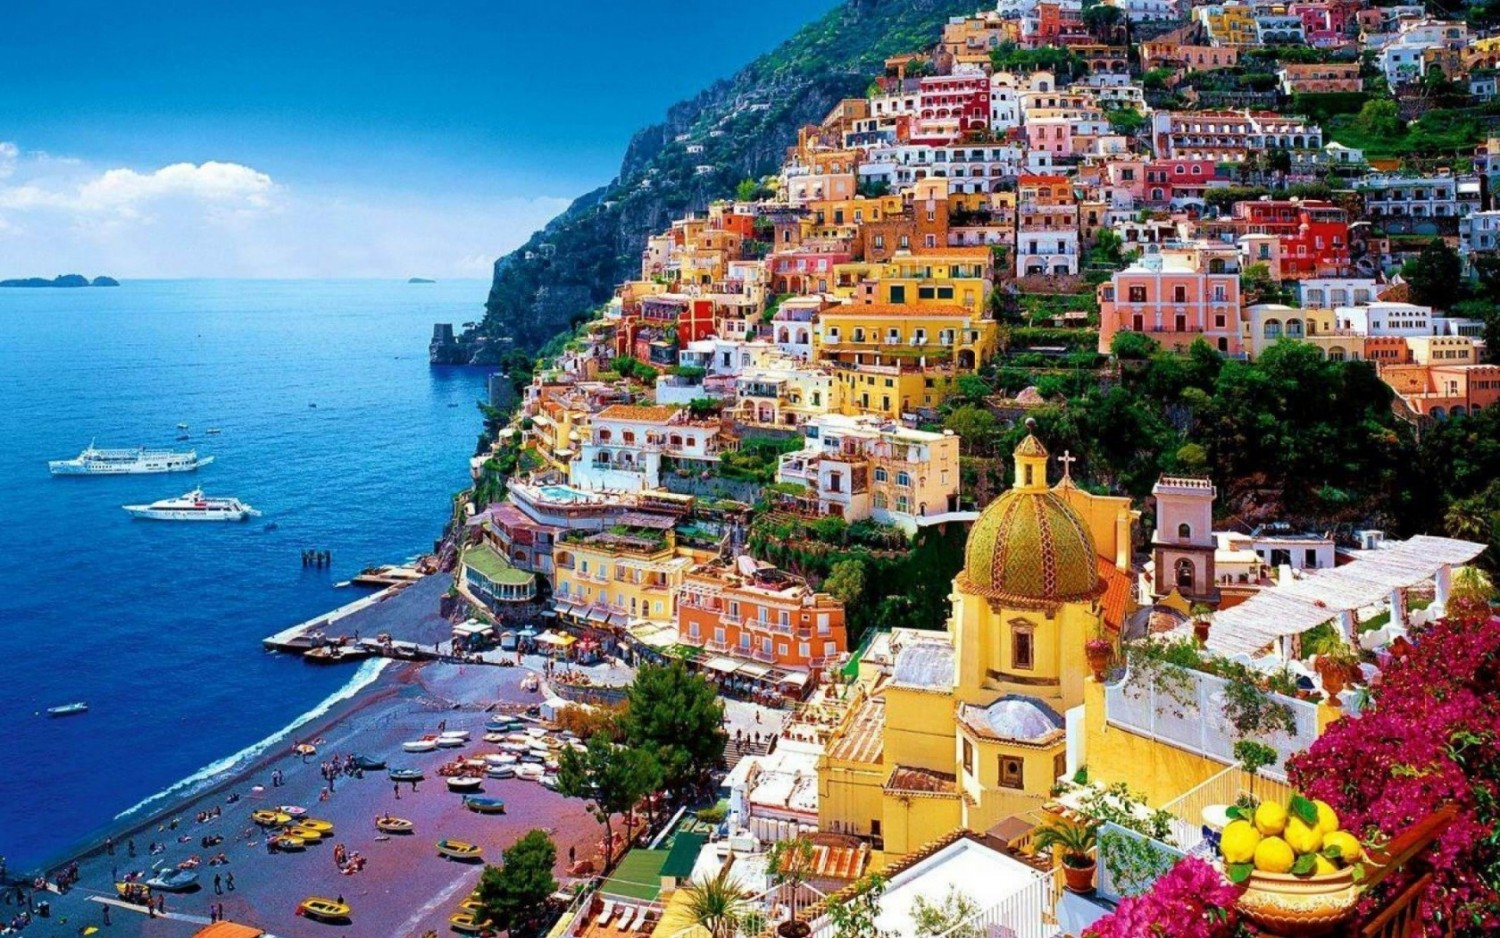 Positano is considered to be one of the most gorgeously picturesque villages in Italy.